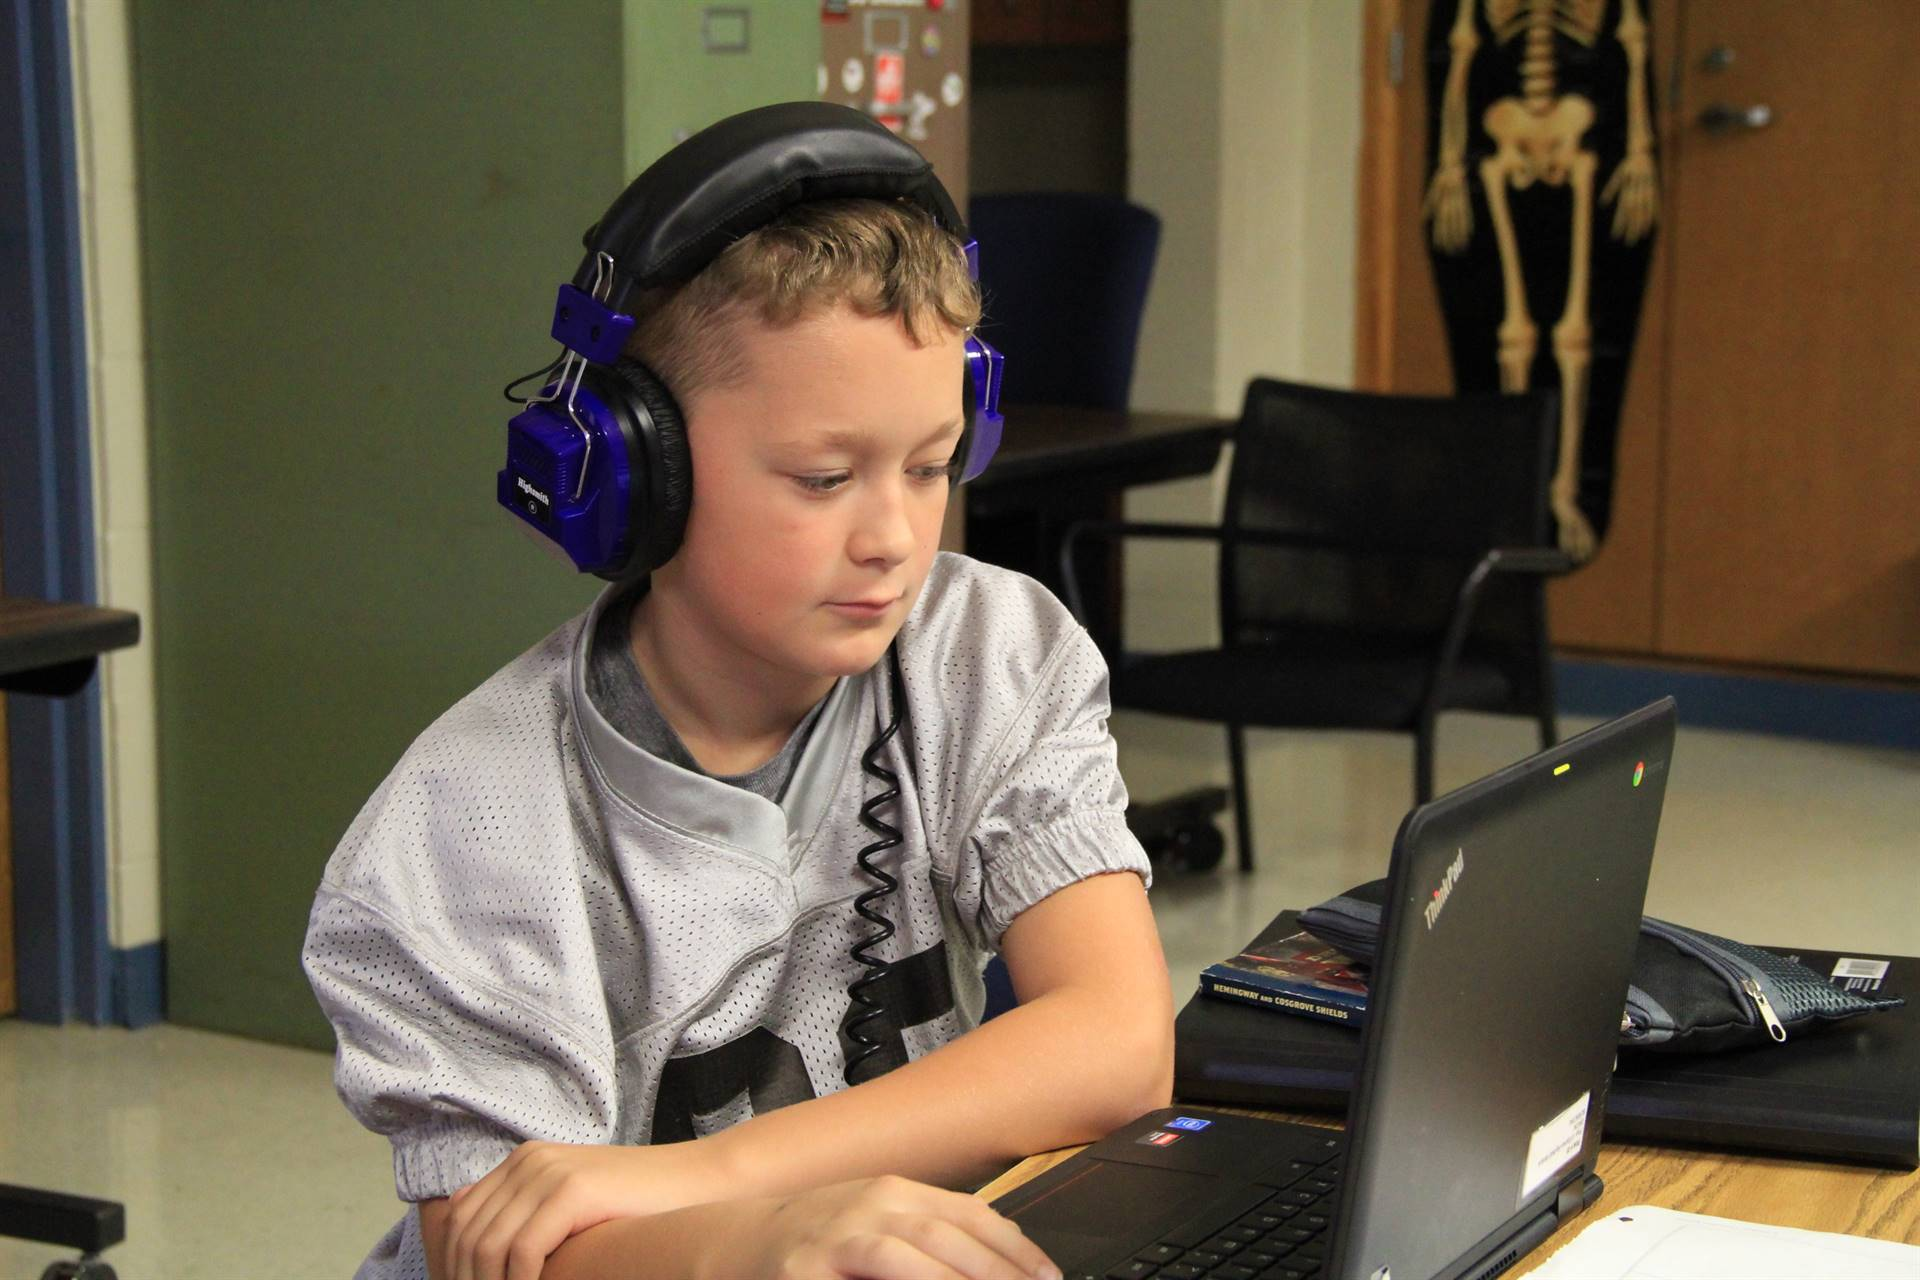 Boy looking at computer wearing headphones